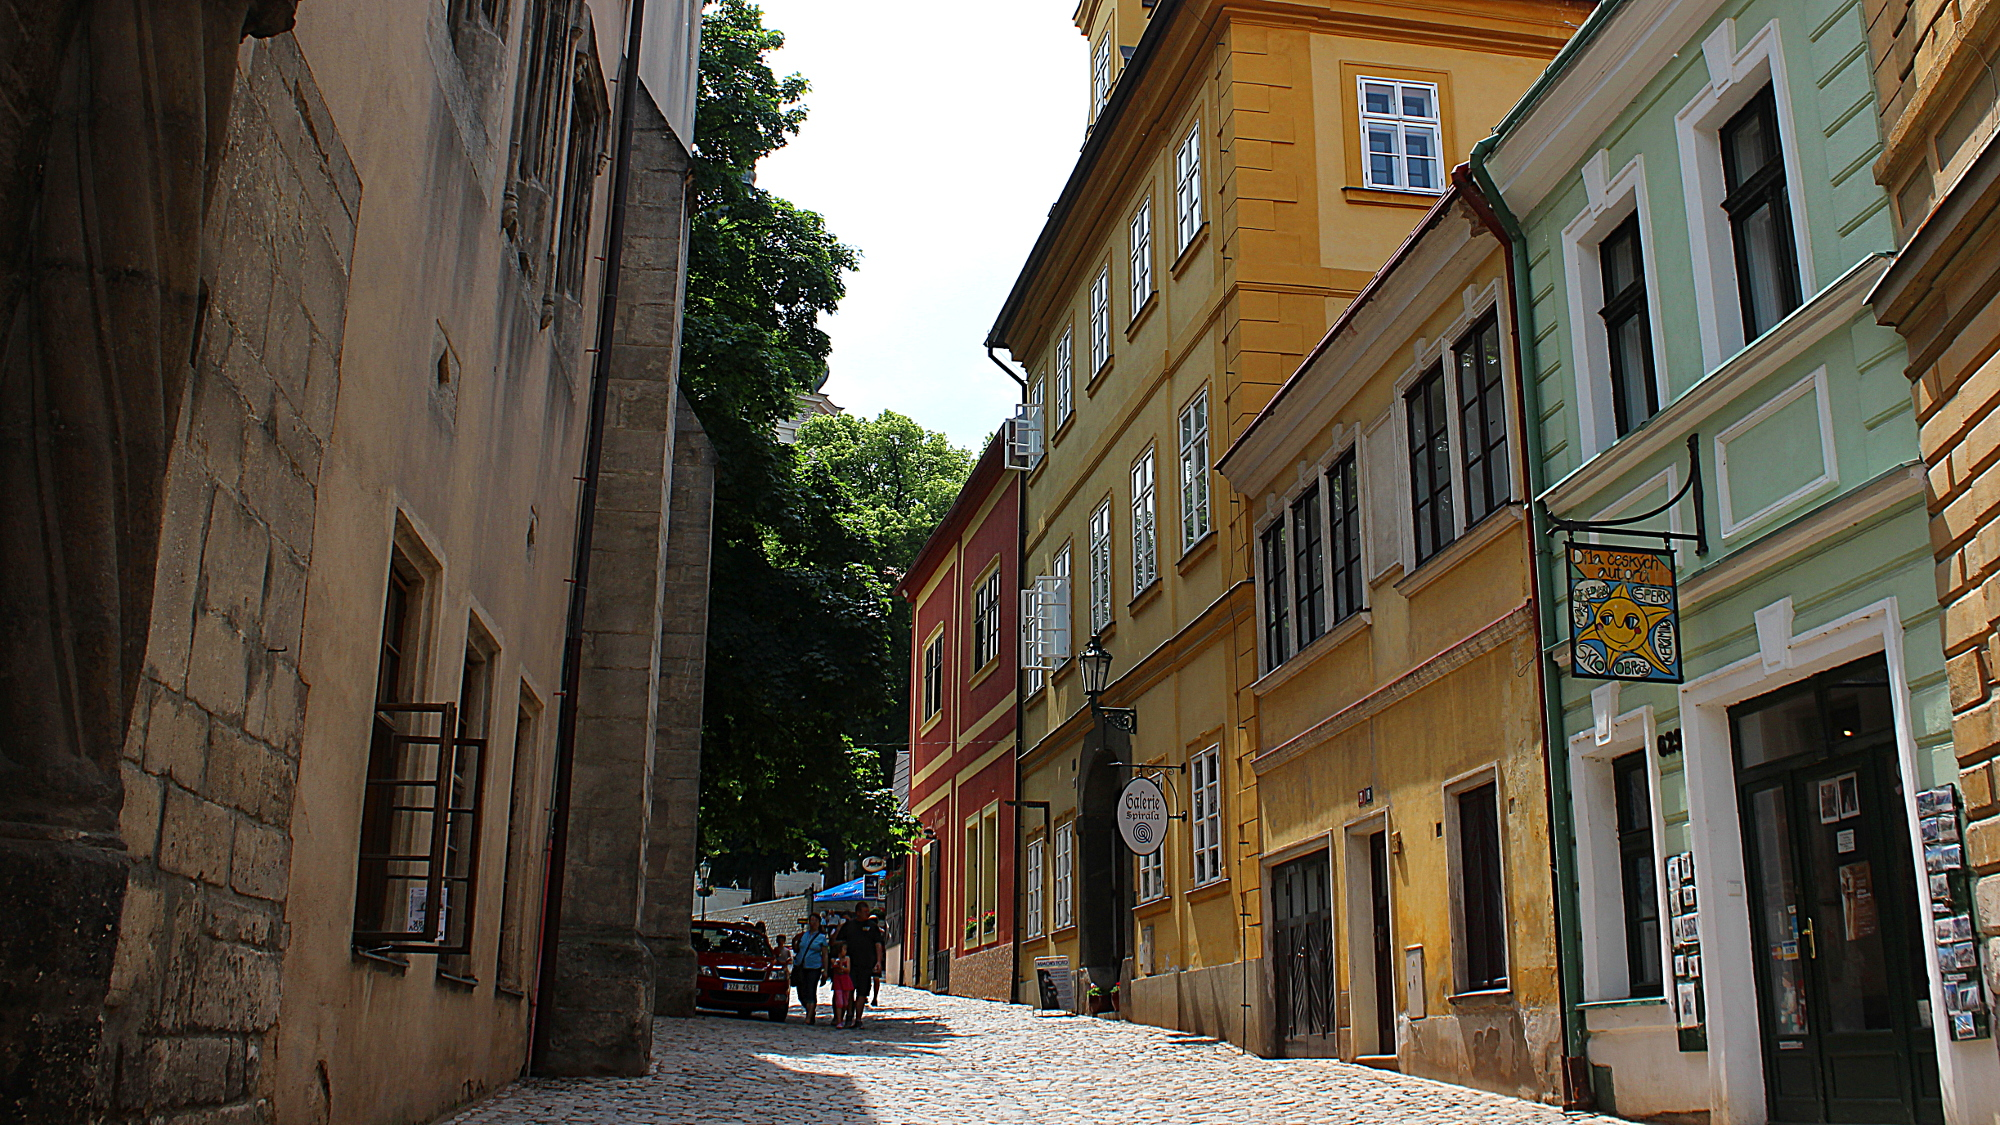 A stone paved street in Kutná Hora.